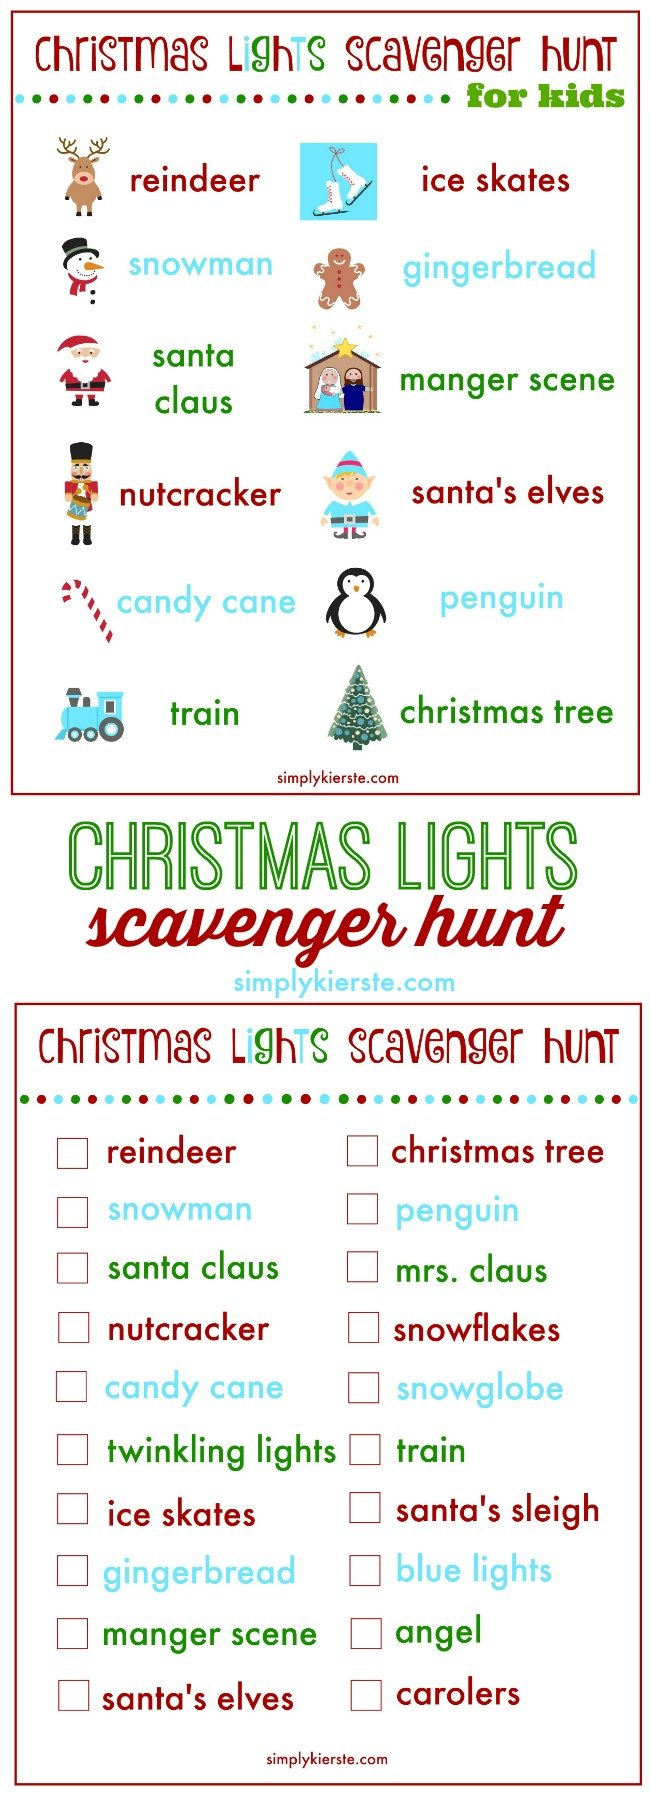 http://simplykierste.com/wp-content/uploads/2015/12/christmas-lights-scavenger-hunt-free-printable-collage.jpg